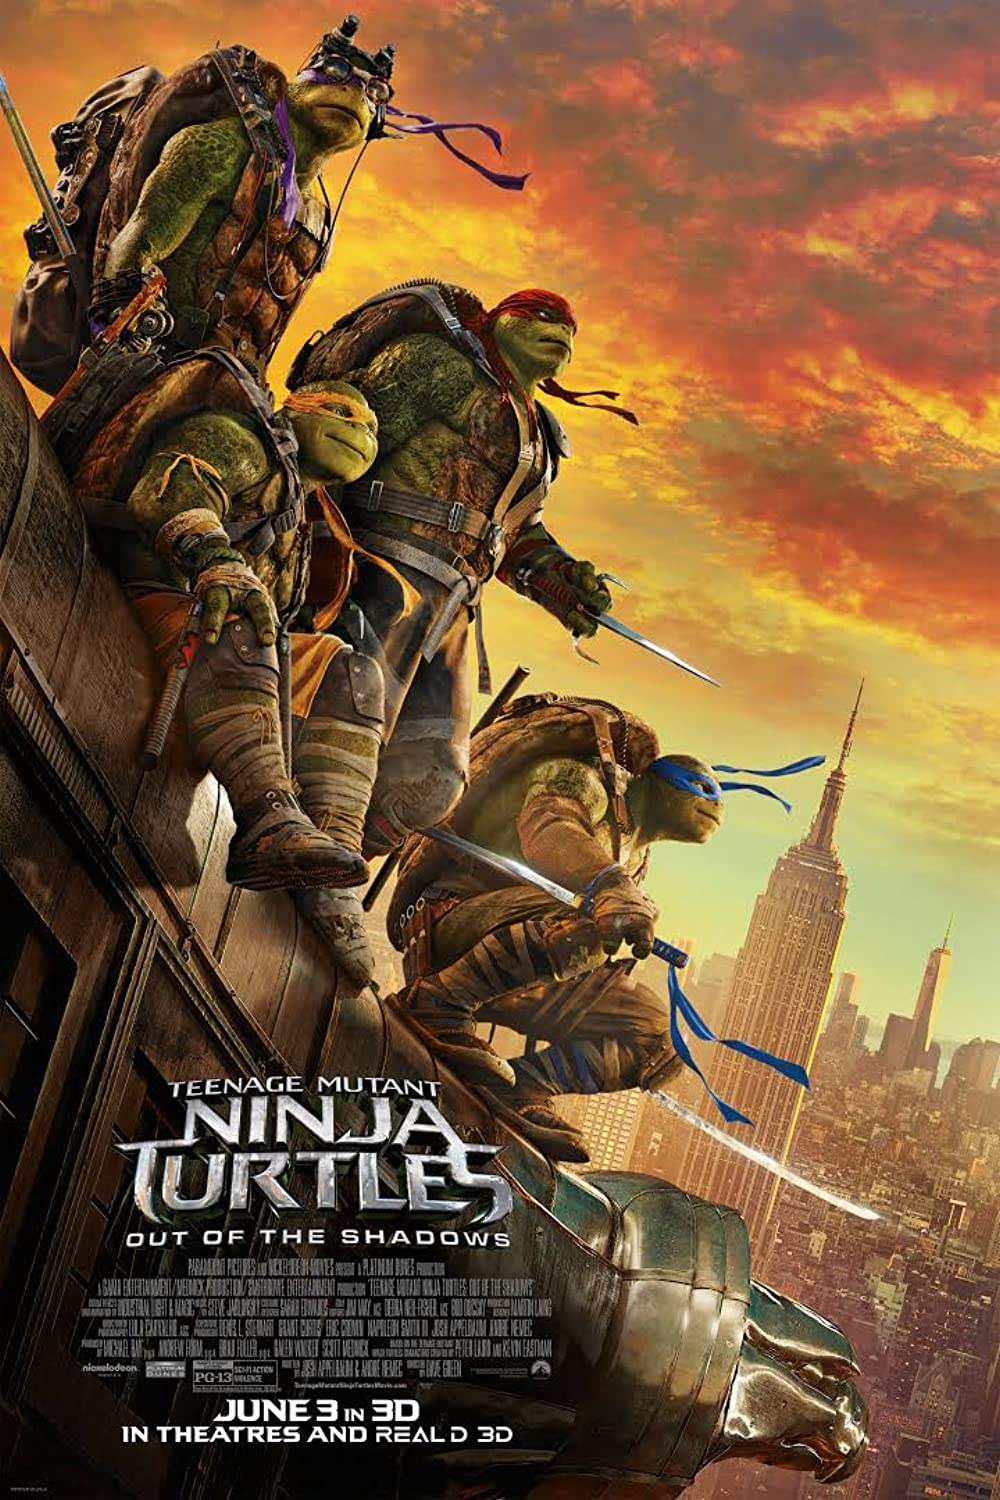 Teenage Mutant Ninja Turtles: Out of the Shadows 2016 Hindi Dual Audio 405MB BluRay ESubs Download